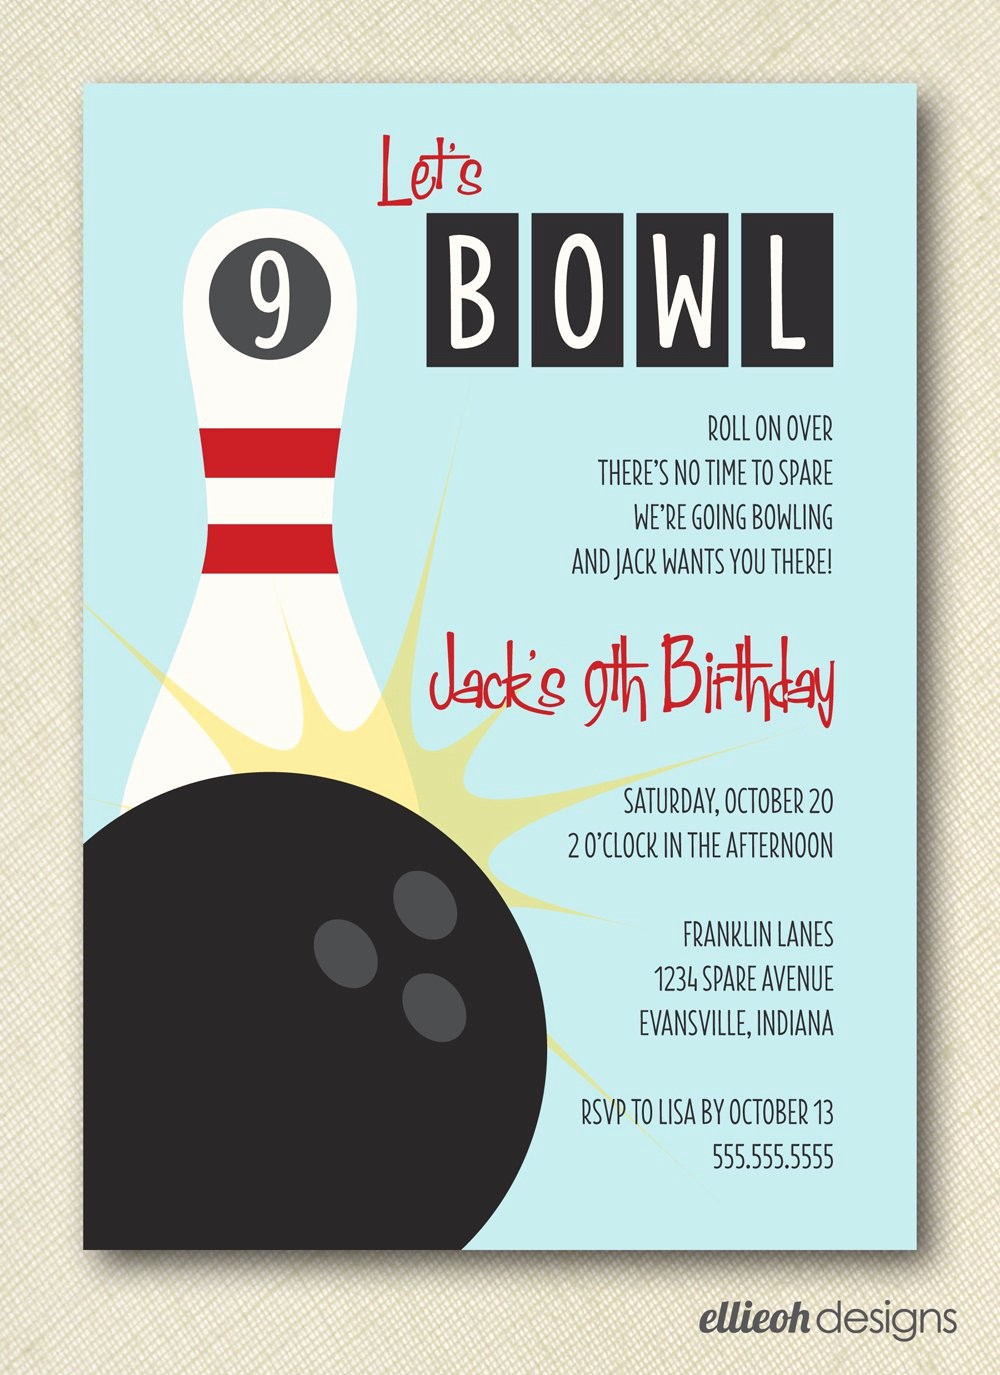 Free Printable Party Invitations Templates Elegant Free Printable Bowling Party Invitation Templates